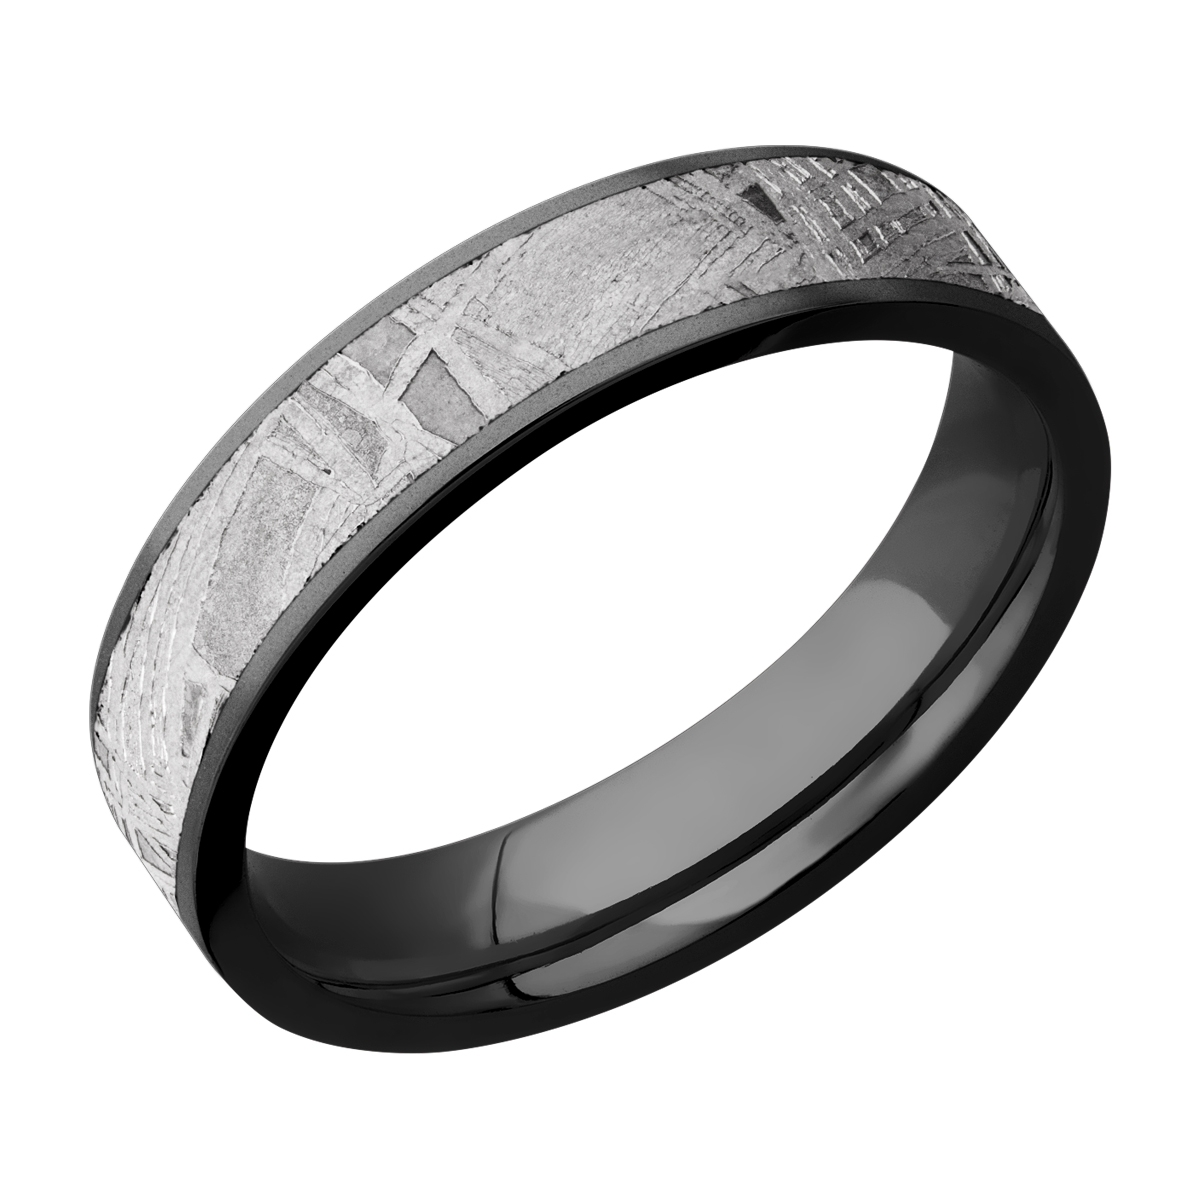 It is a graphic of Lashbrook Z44F44/METEORITE Zirconium Wedding Ring or Band